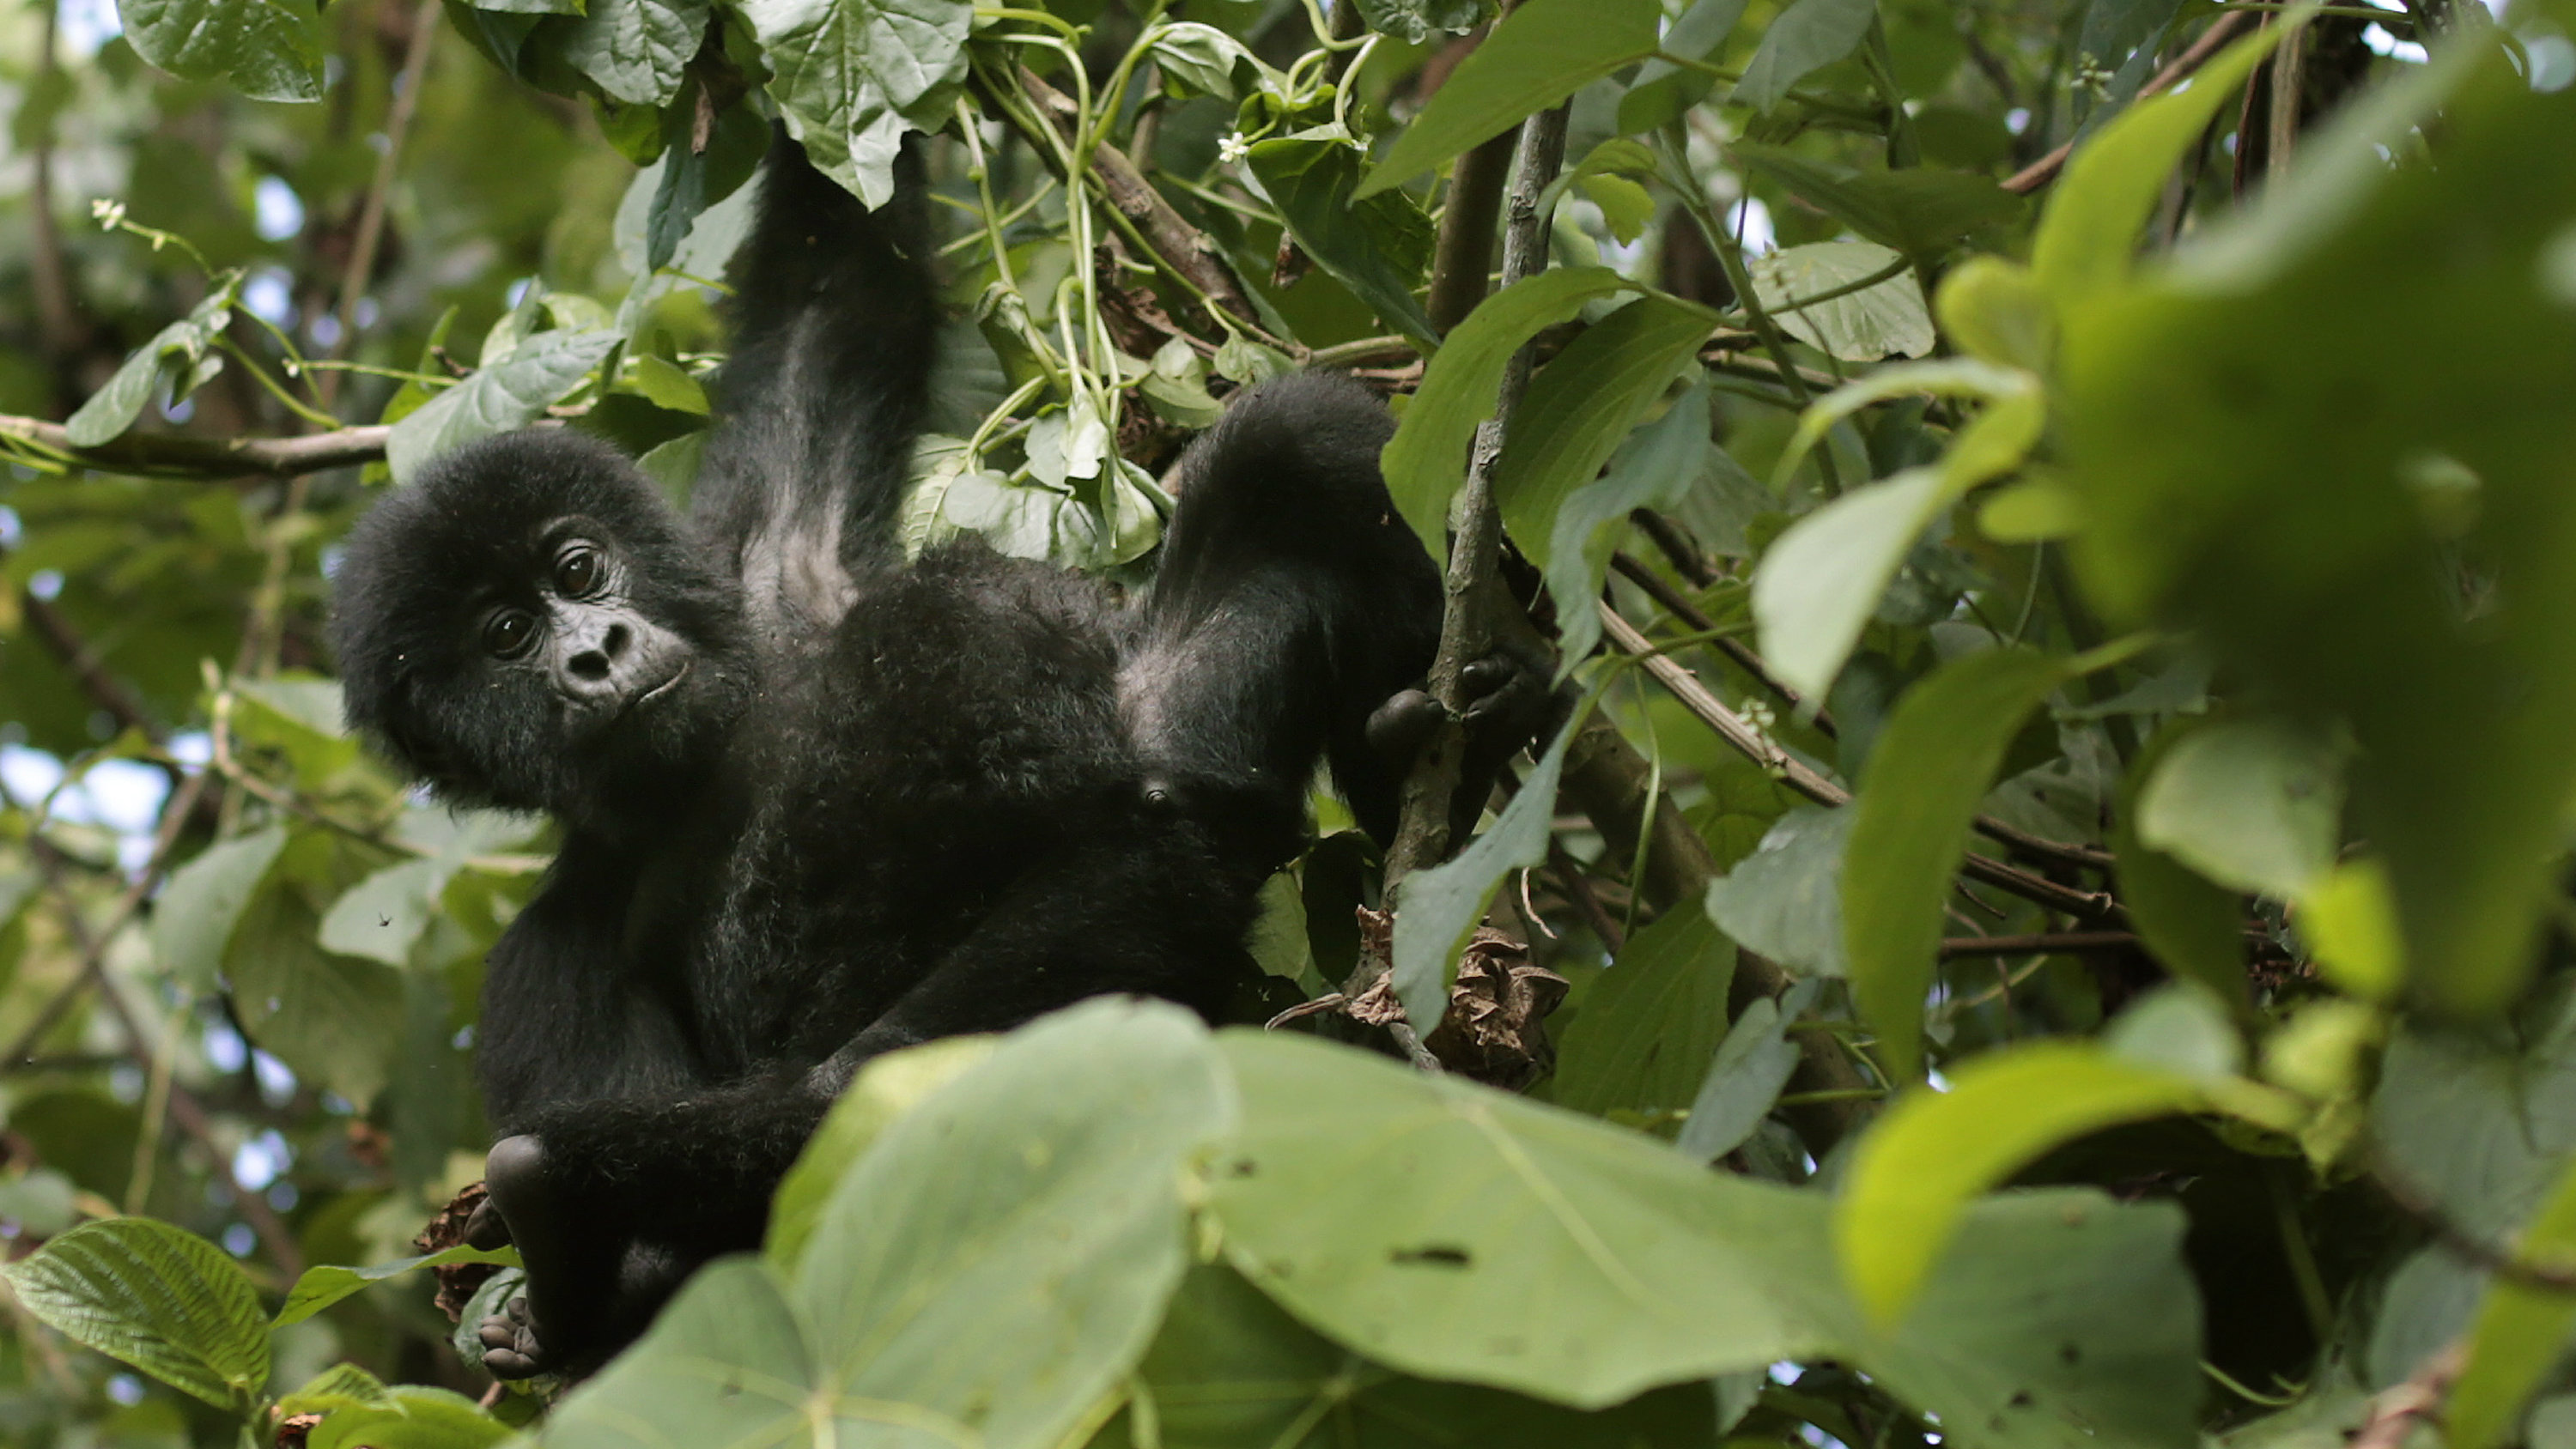 Gorilla plays in the trees